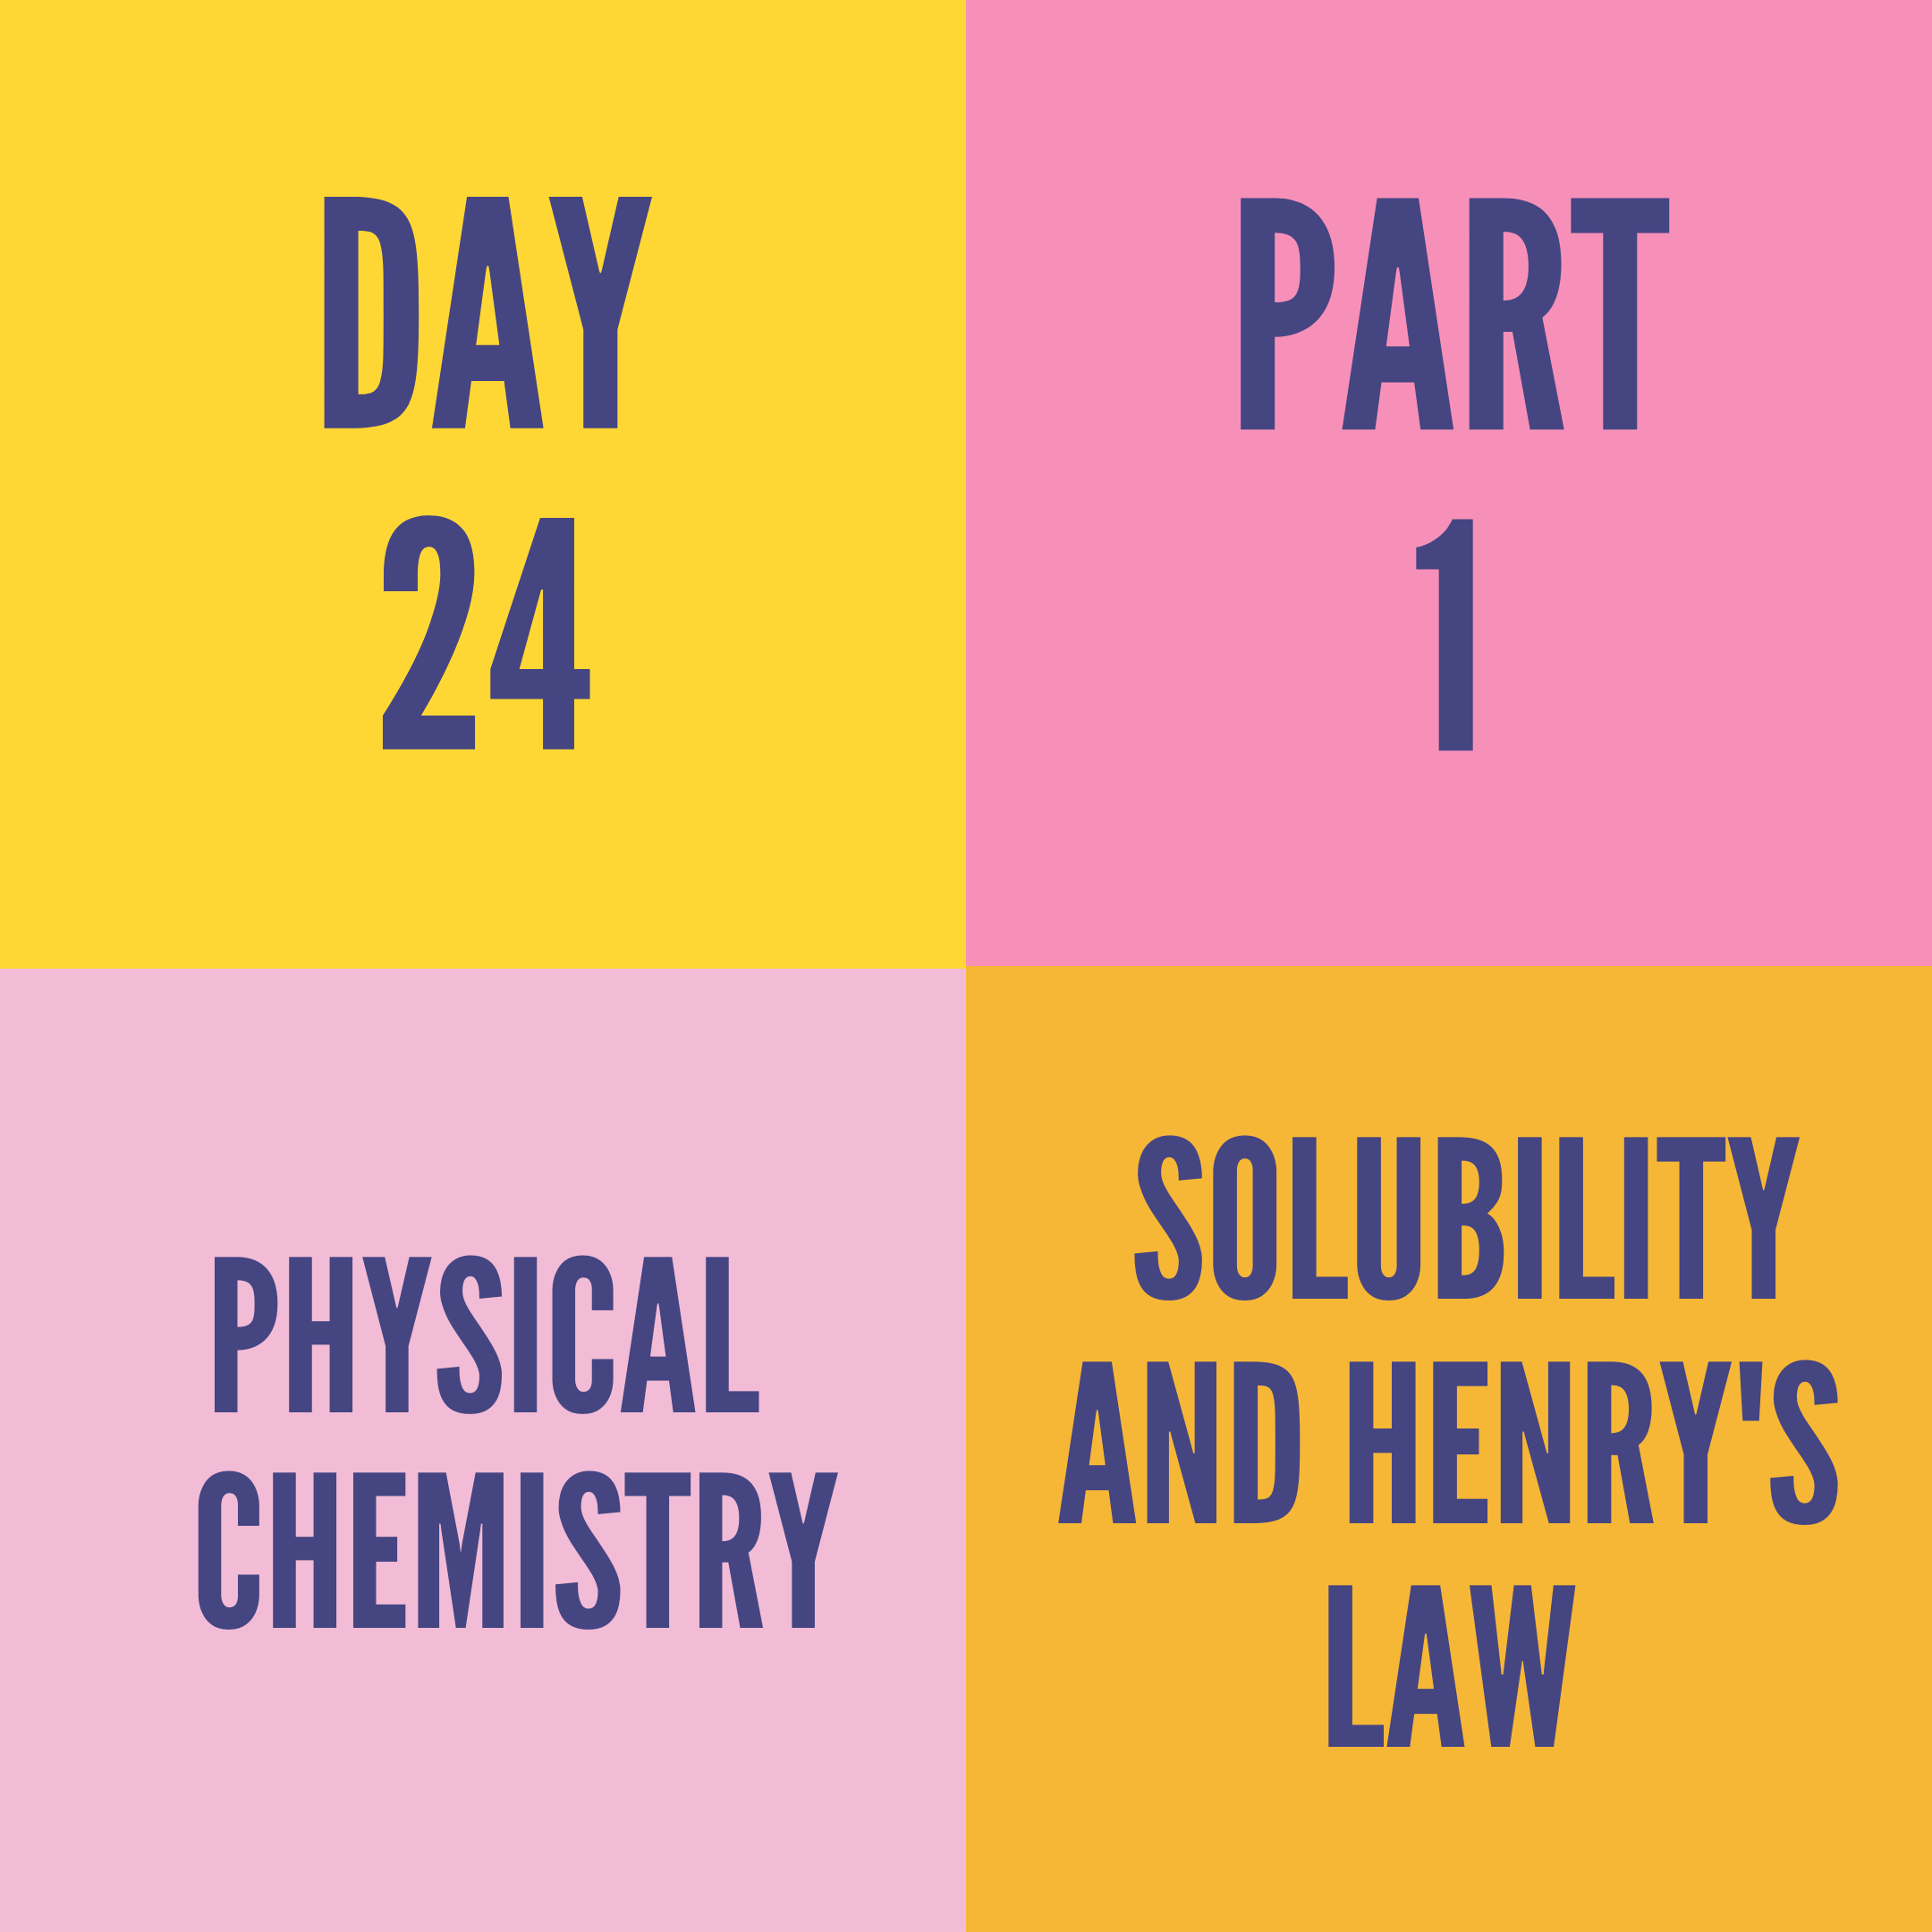 DAY-24 PART-1 SOLUBILITY AND HENRY'S LAW